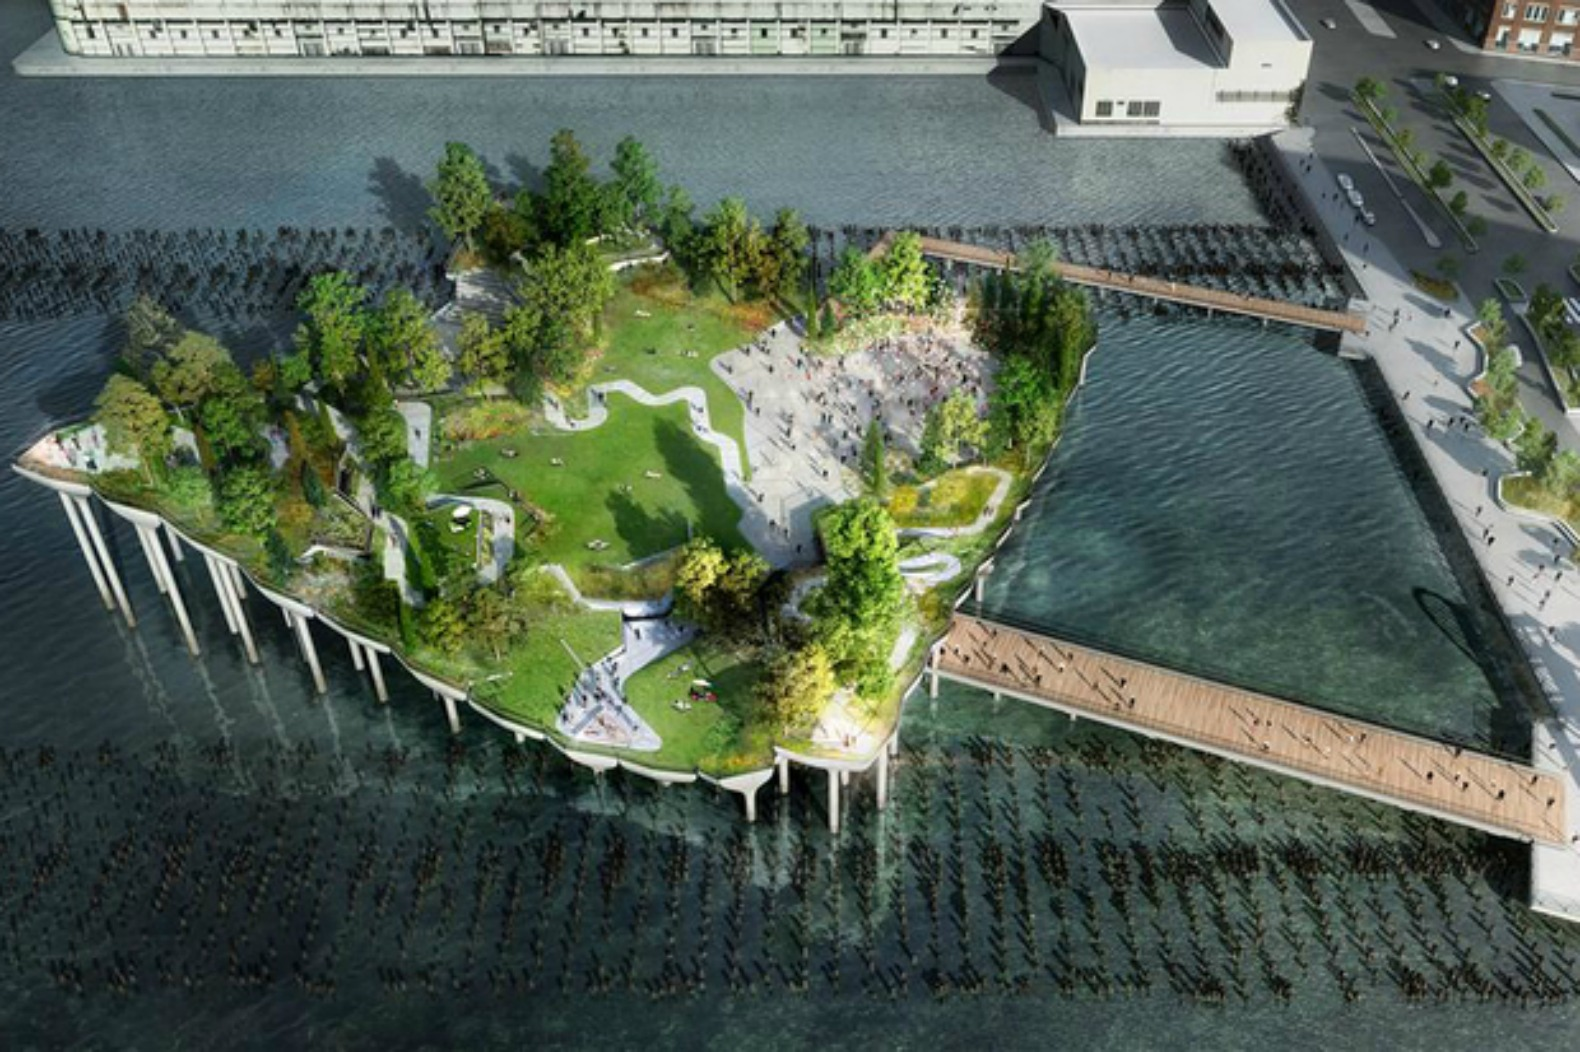 Pier 55 elevated island park finally gets the go-ahead for construction